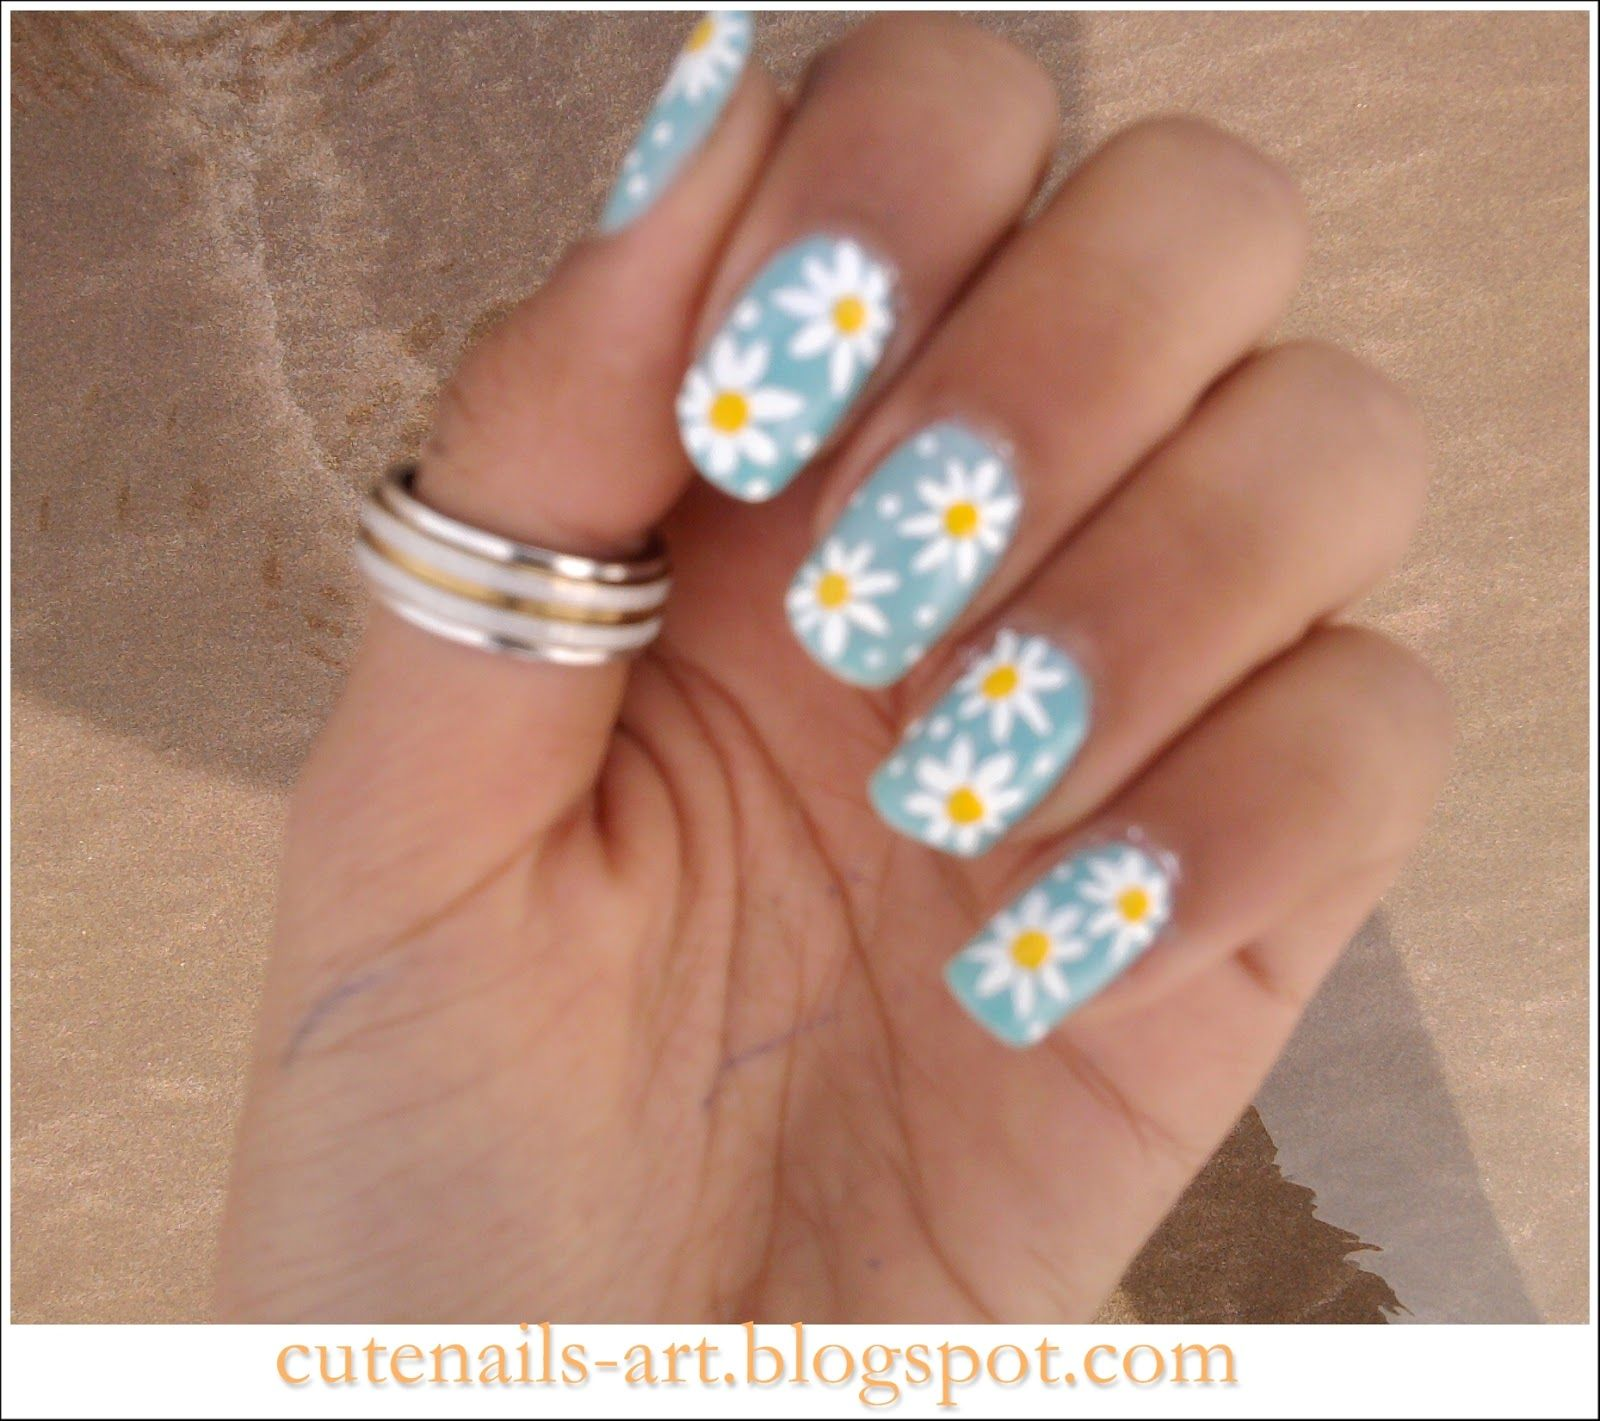 Cute daisy nails , easy to do with regular design brush and ...